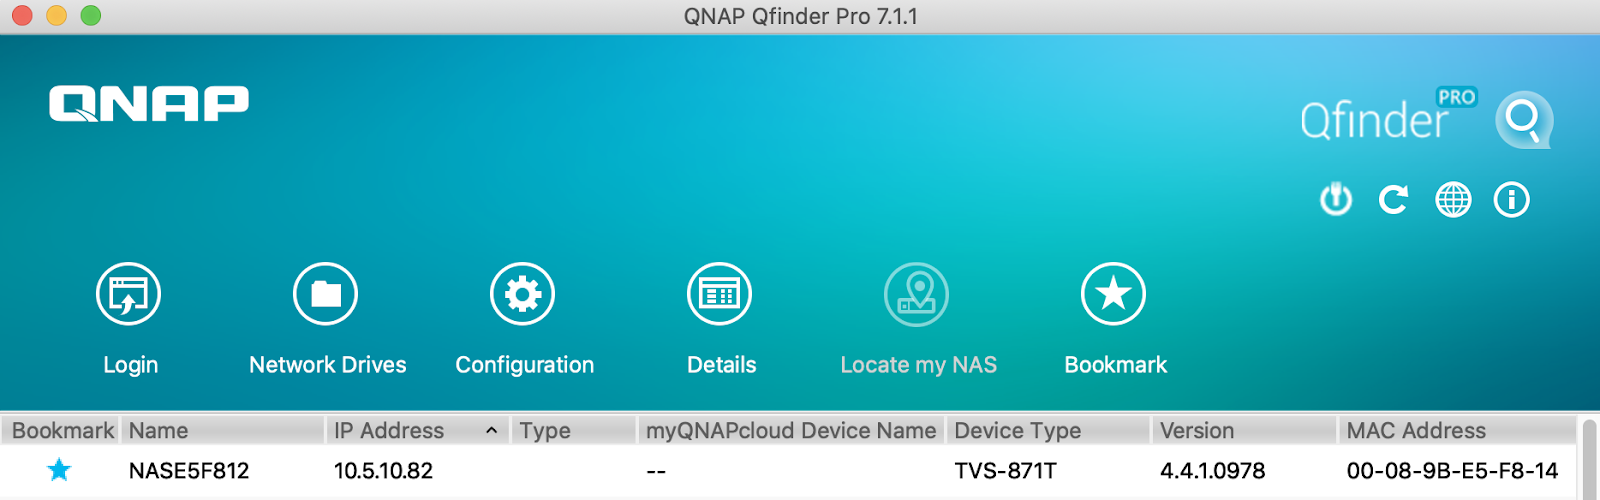 How to access QNAP NAS by SSH? | QNAP